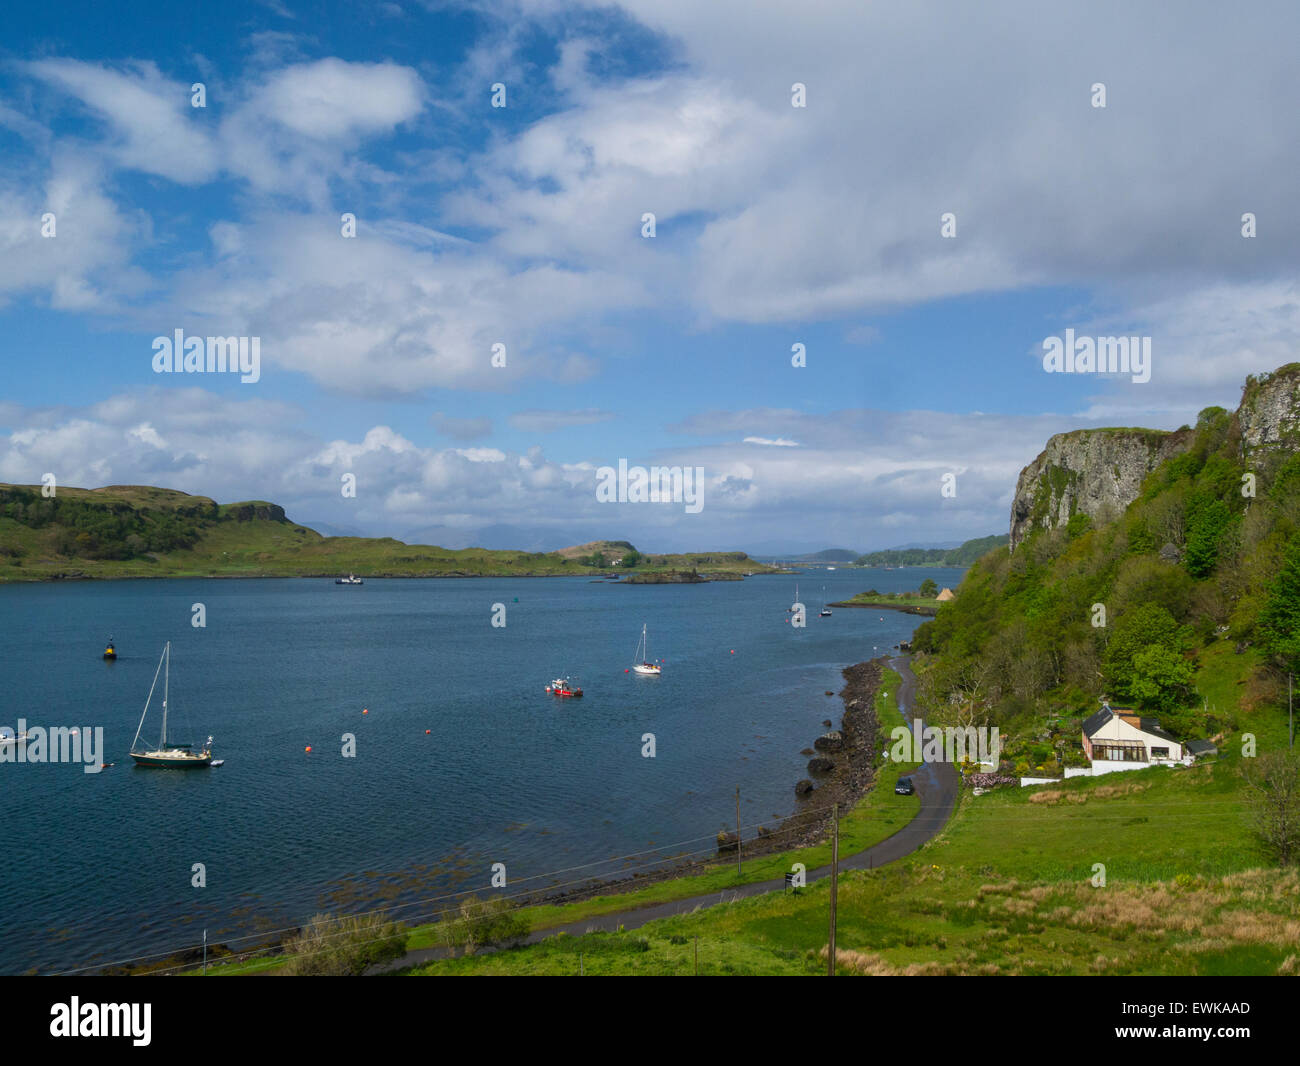 View down to Kerrera Island and yachts moored in Sound of Kerrera popular tourist resort town Oban Argyll and Bute - Stock Image